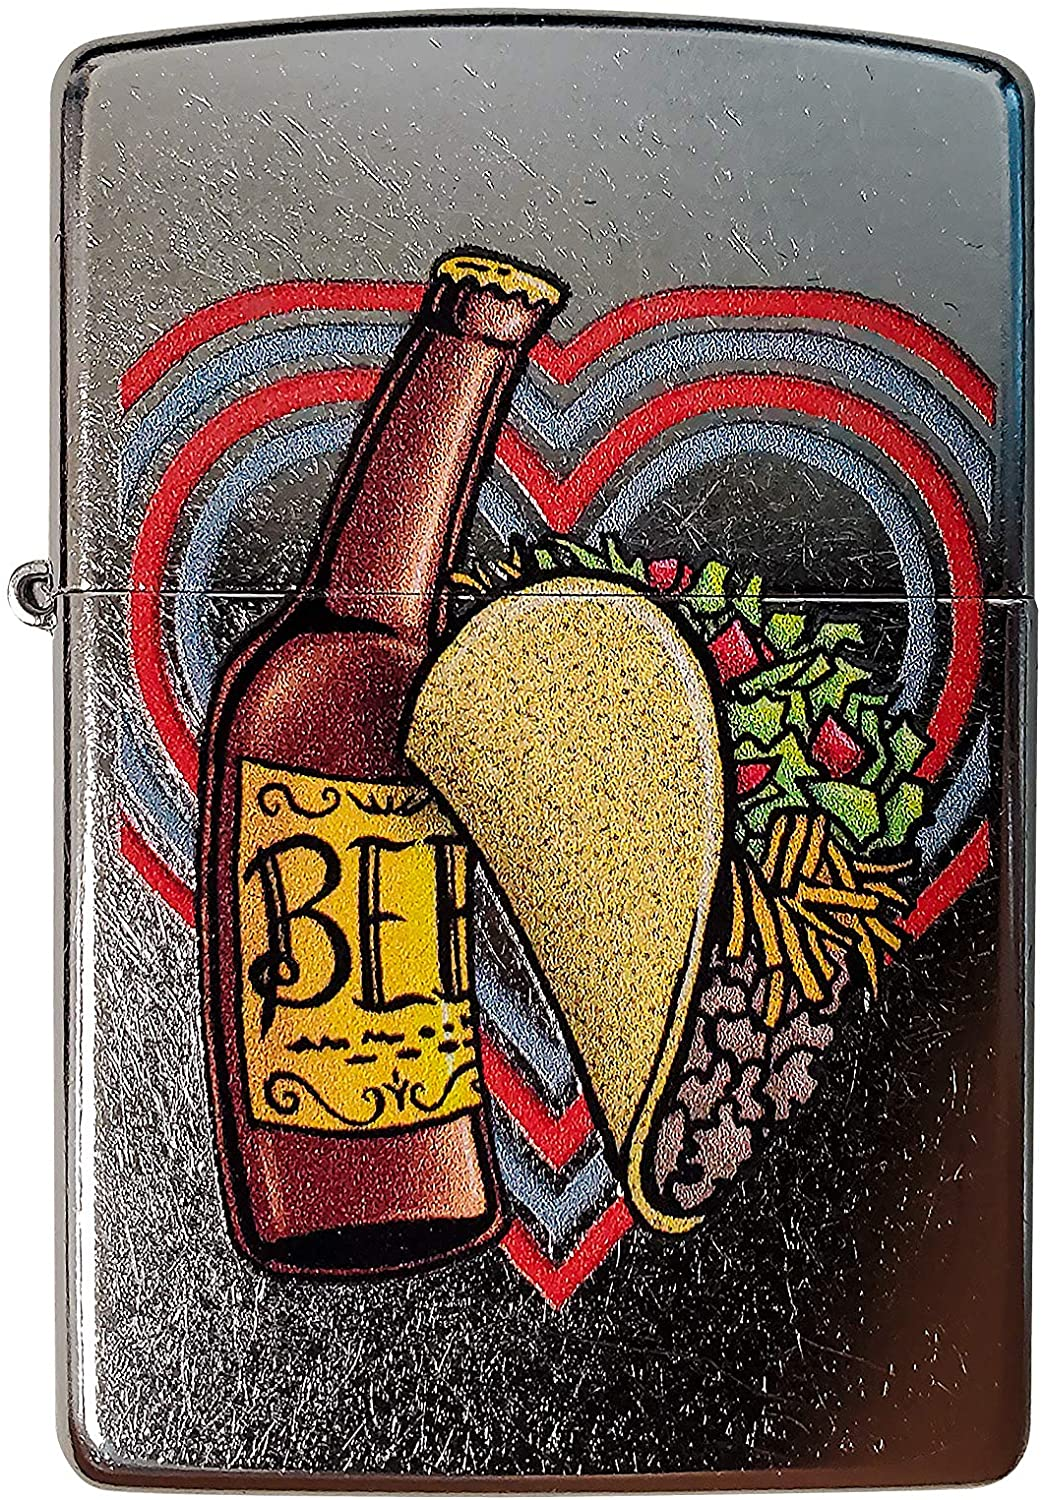 Zippo Custom Lighter - Perfect Pair Beer and Tacos - Regular Street Chrome - Gifts for Him, for Her, for Husband, for Wife, for Them, for Men, for Women